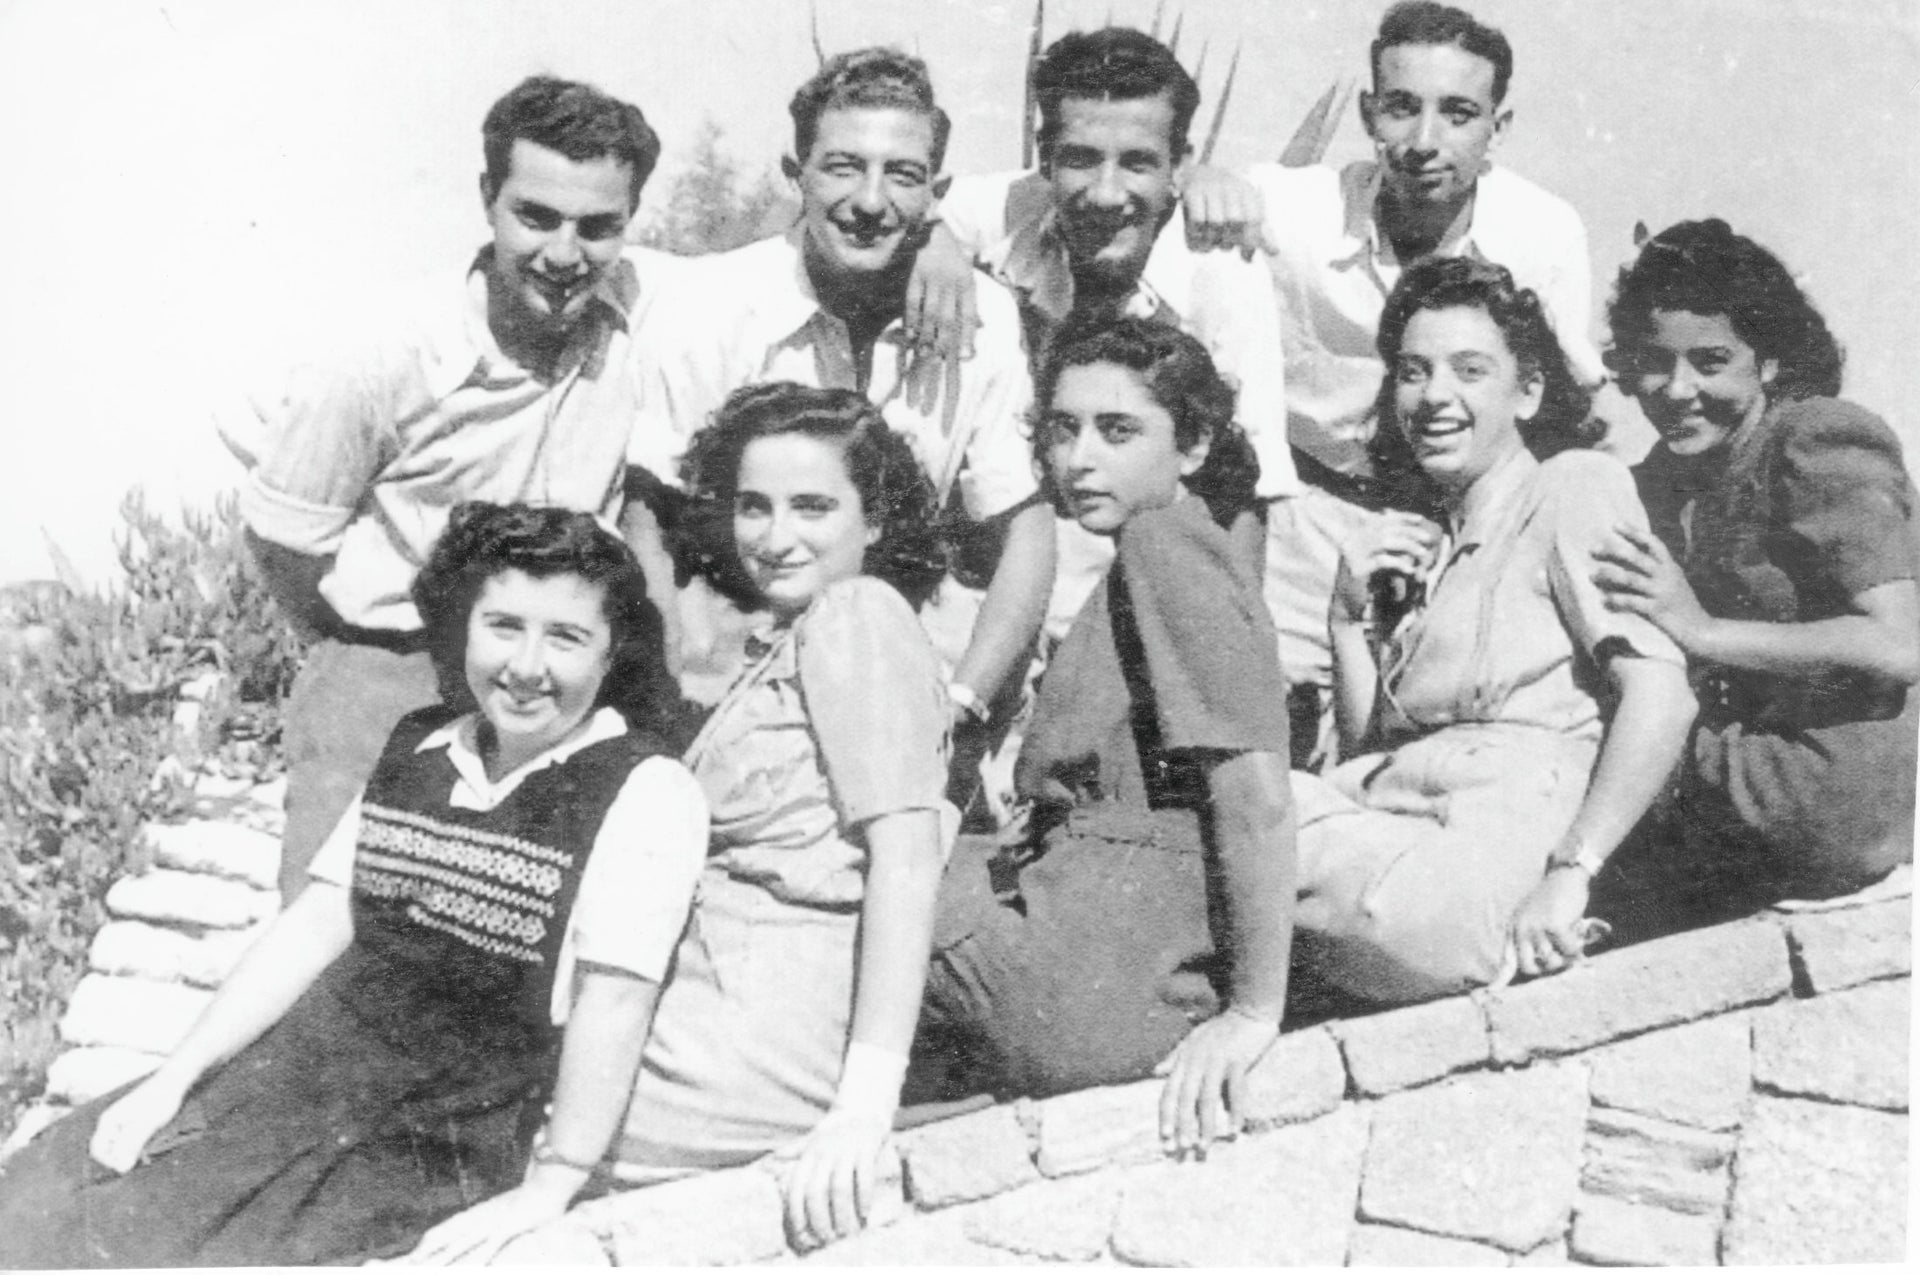 An unidentified photograph from the Palmach Museum archives